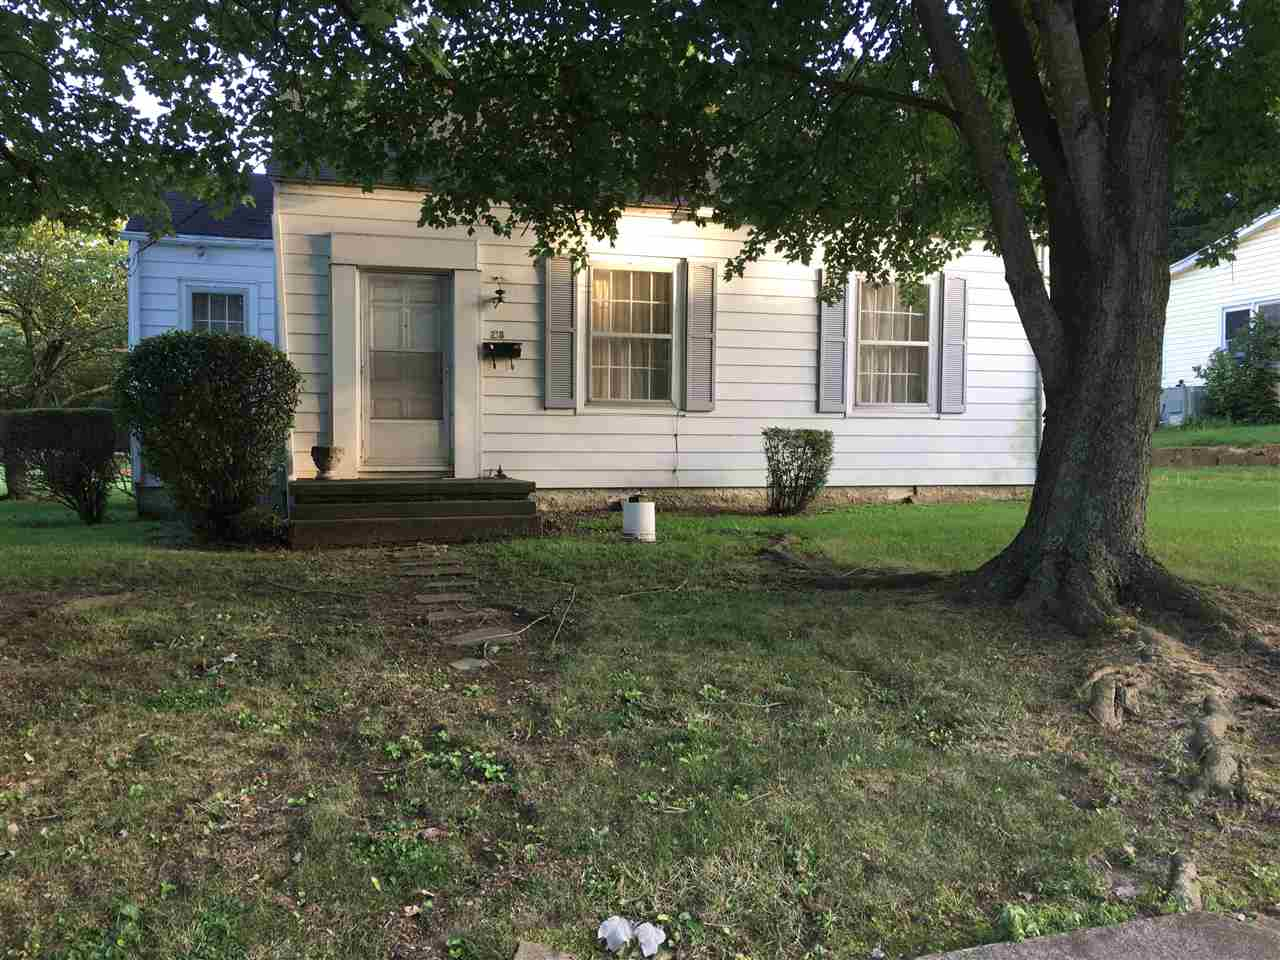 Photo of 218 W College  Mayfield  KY